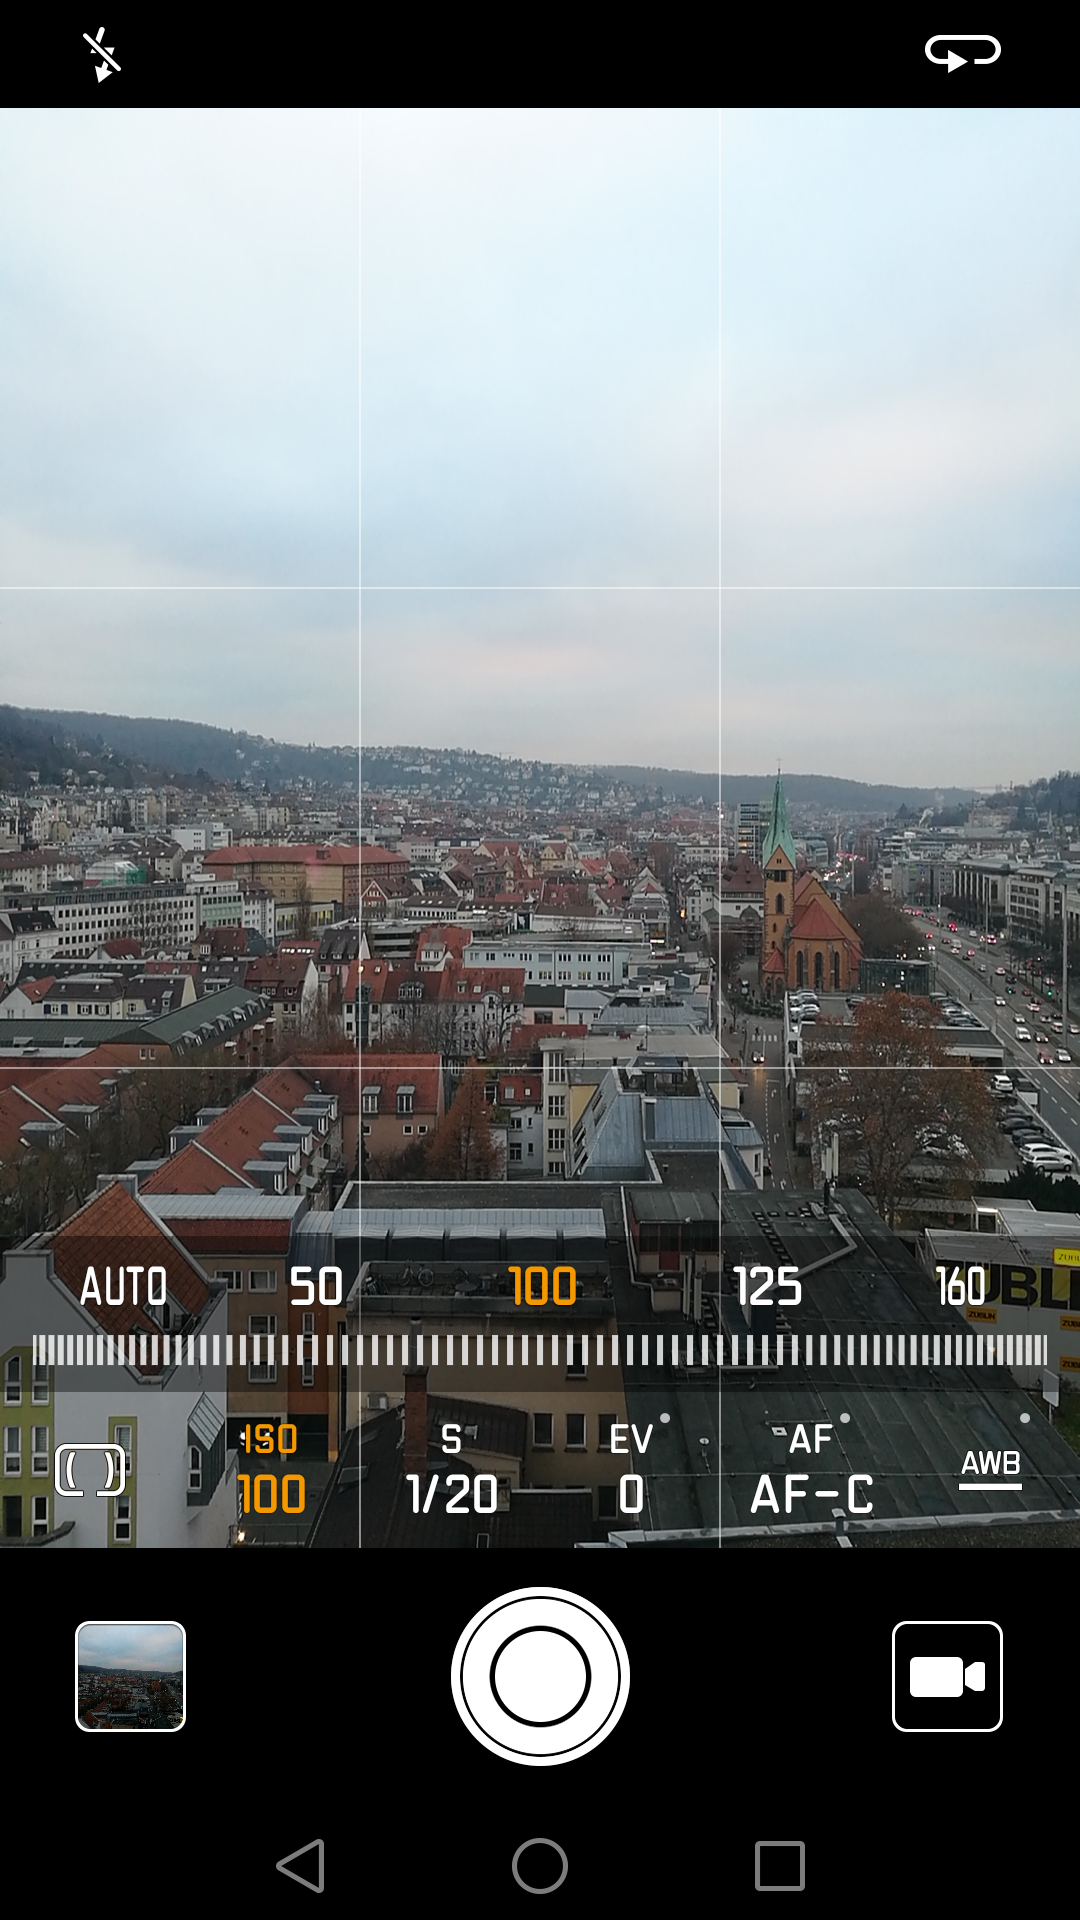 Manual settings to adjust for Highlights / Shadows.